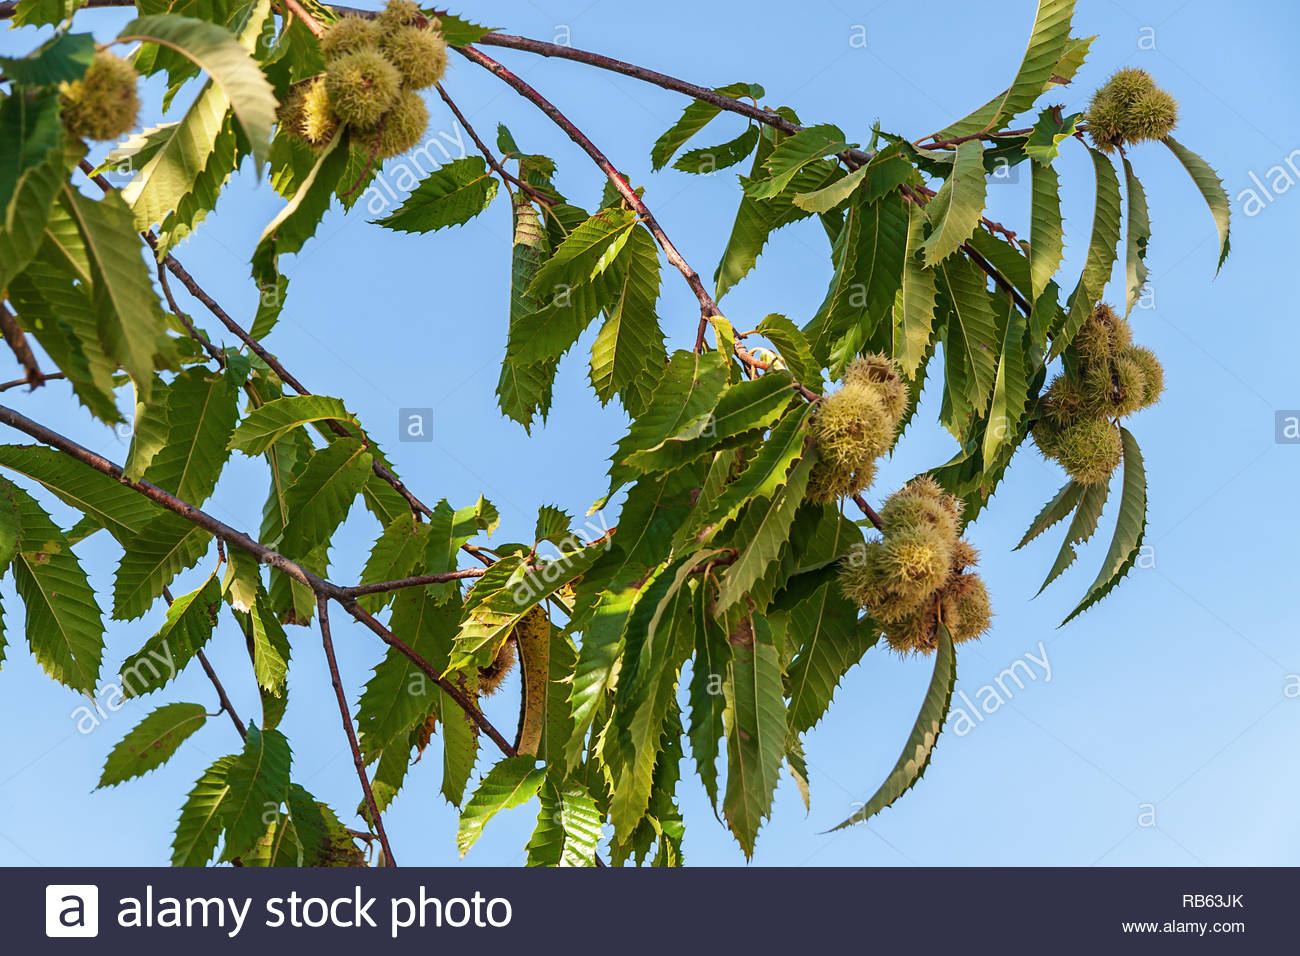 Chestnuts (Castanea sativa, Fagaceae), also known as sweet chestnuts, growing on the branches of a tree in the Southern Apennines in Italy. - Stock Image